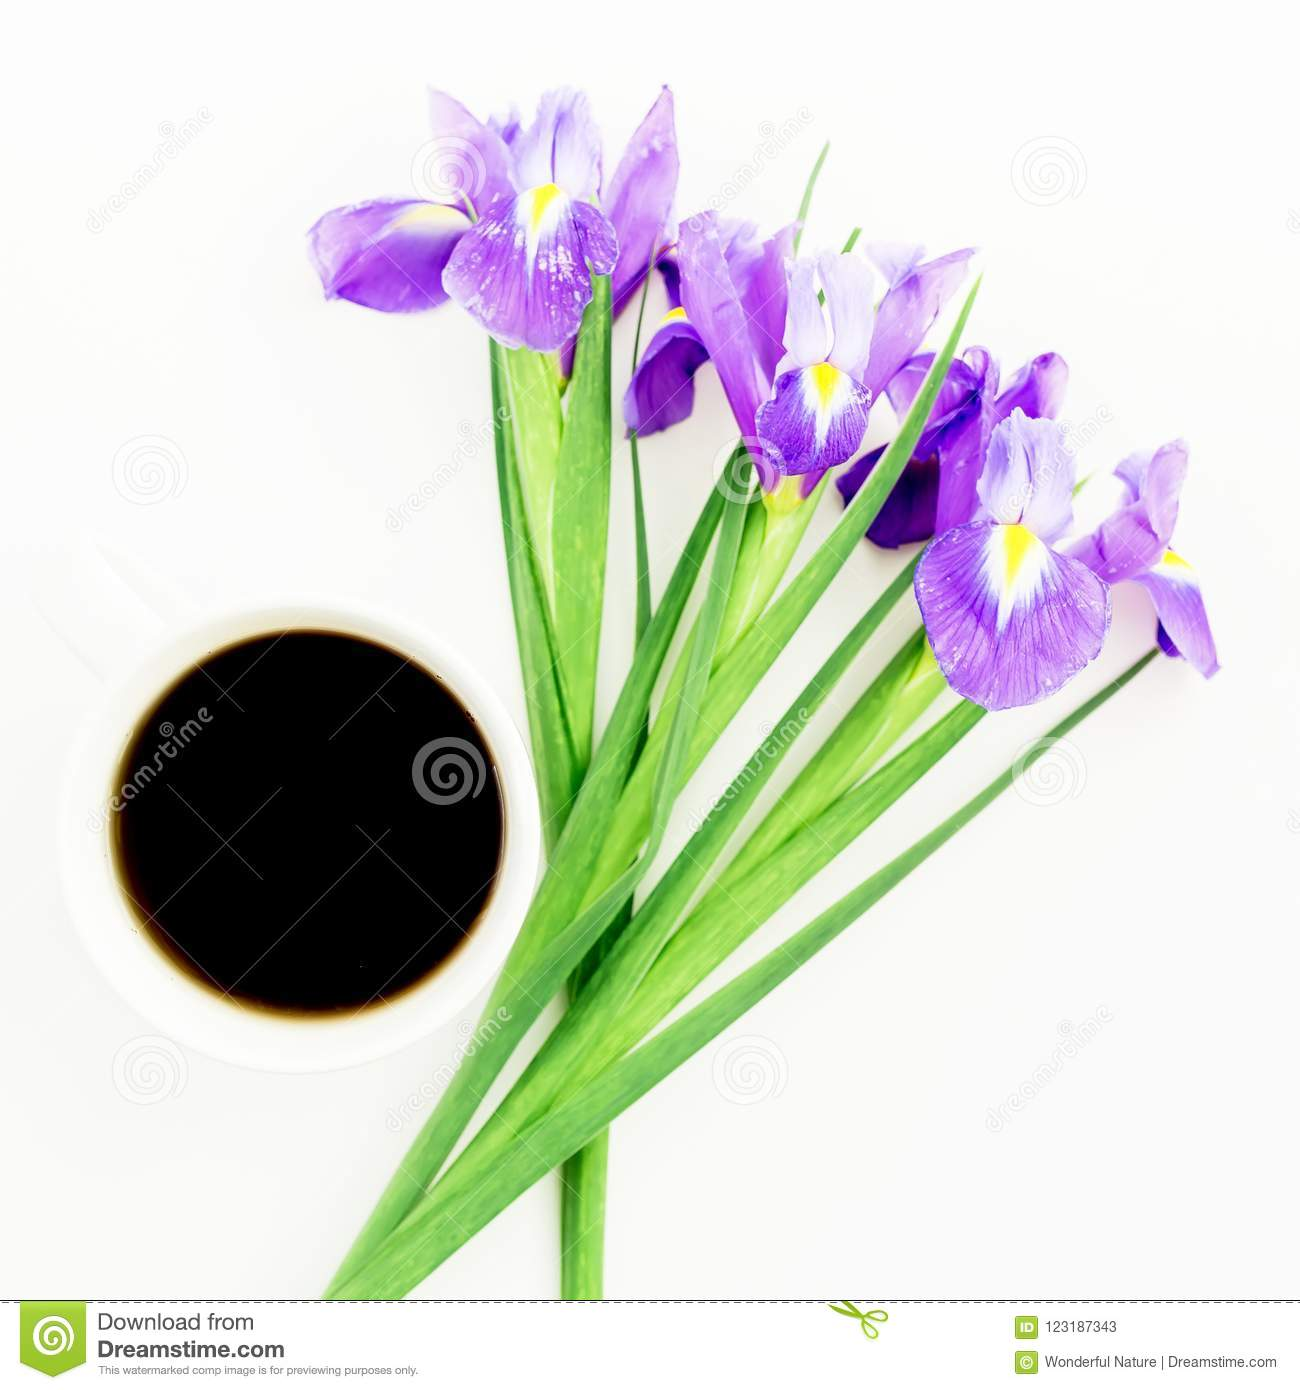 Bouquet of iris flowers with mug of black coffee on white background download bouquet of iris flowers with mug of black coffee on white background flat lay izmirmasajfo